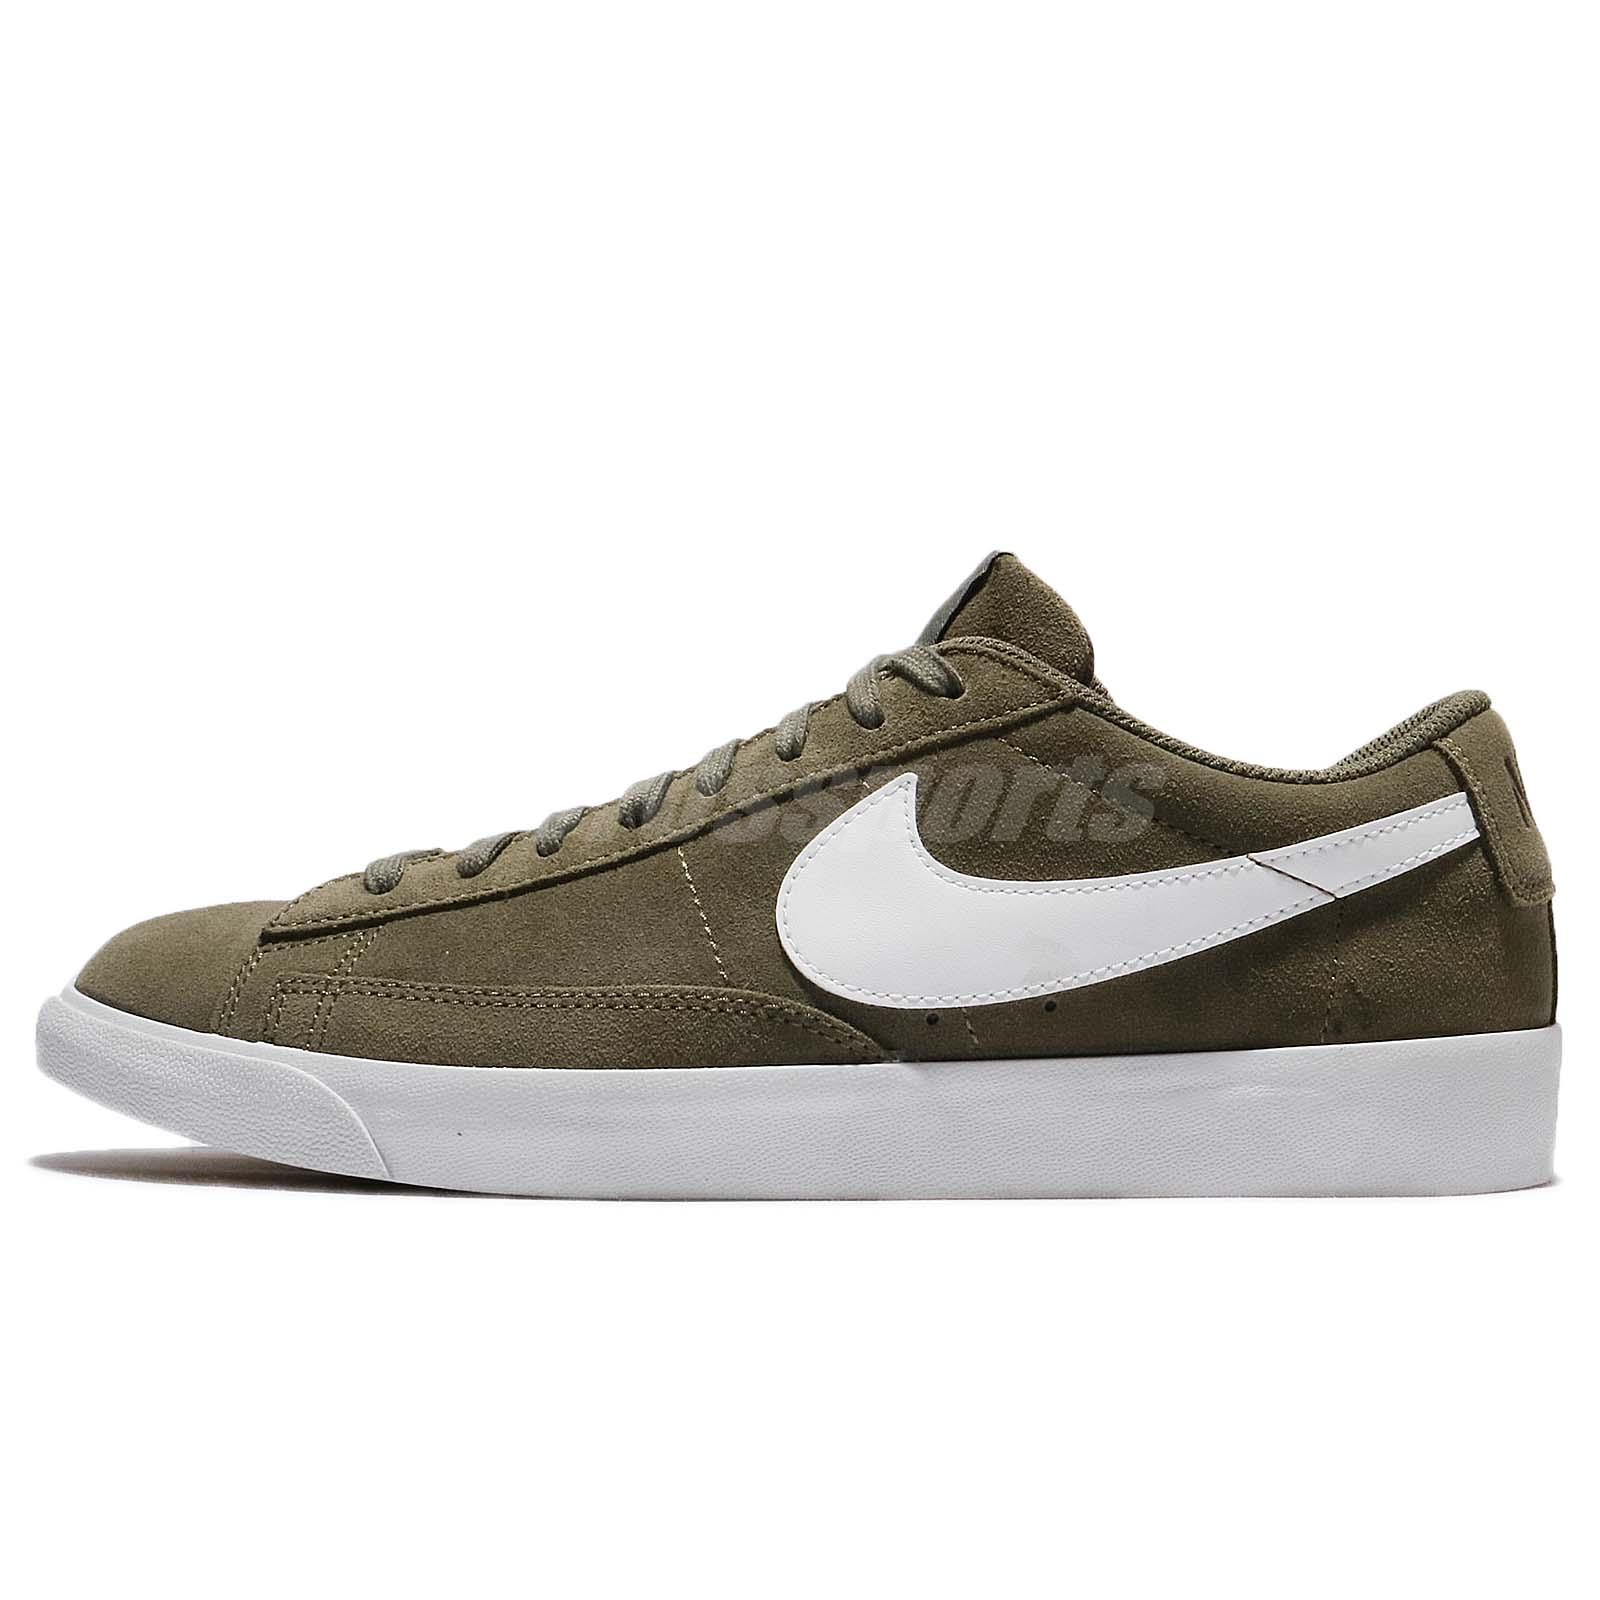 pretty cheap good looking retail prices Details about Nike Blazer Low Suede Medium Olive Green Men Shoes Sneakers  Trainers 371760-209